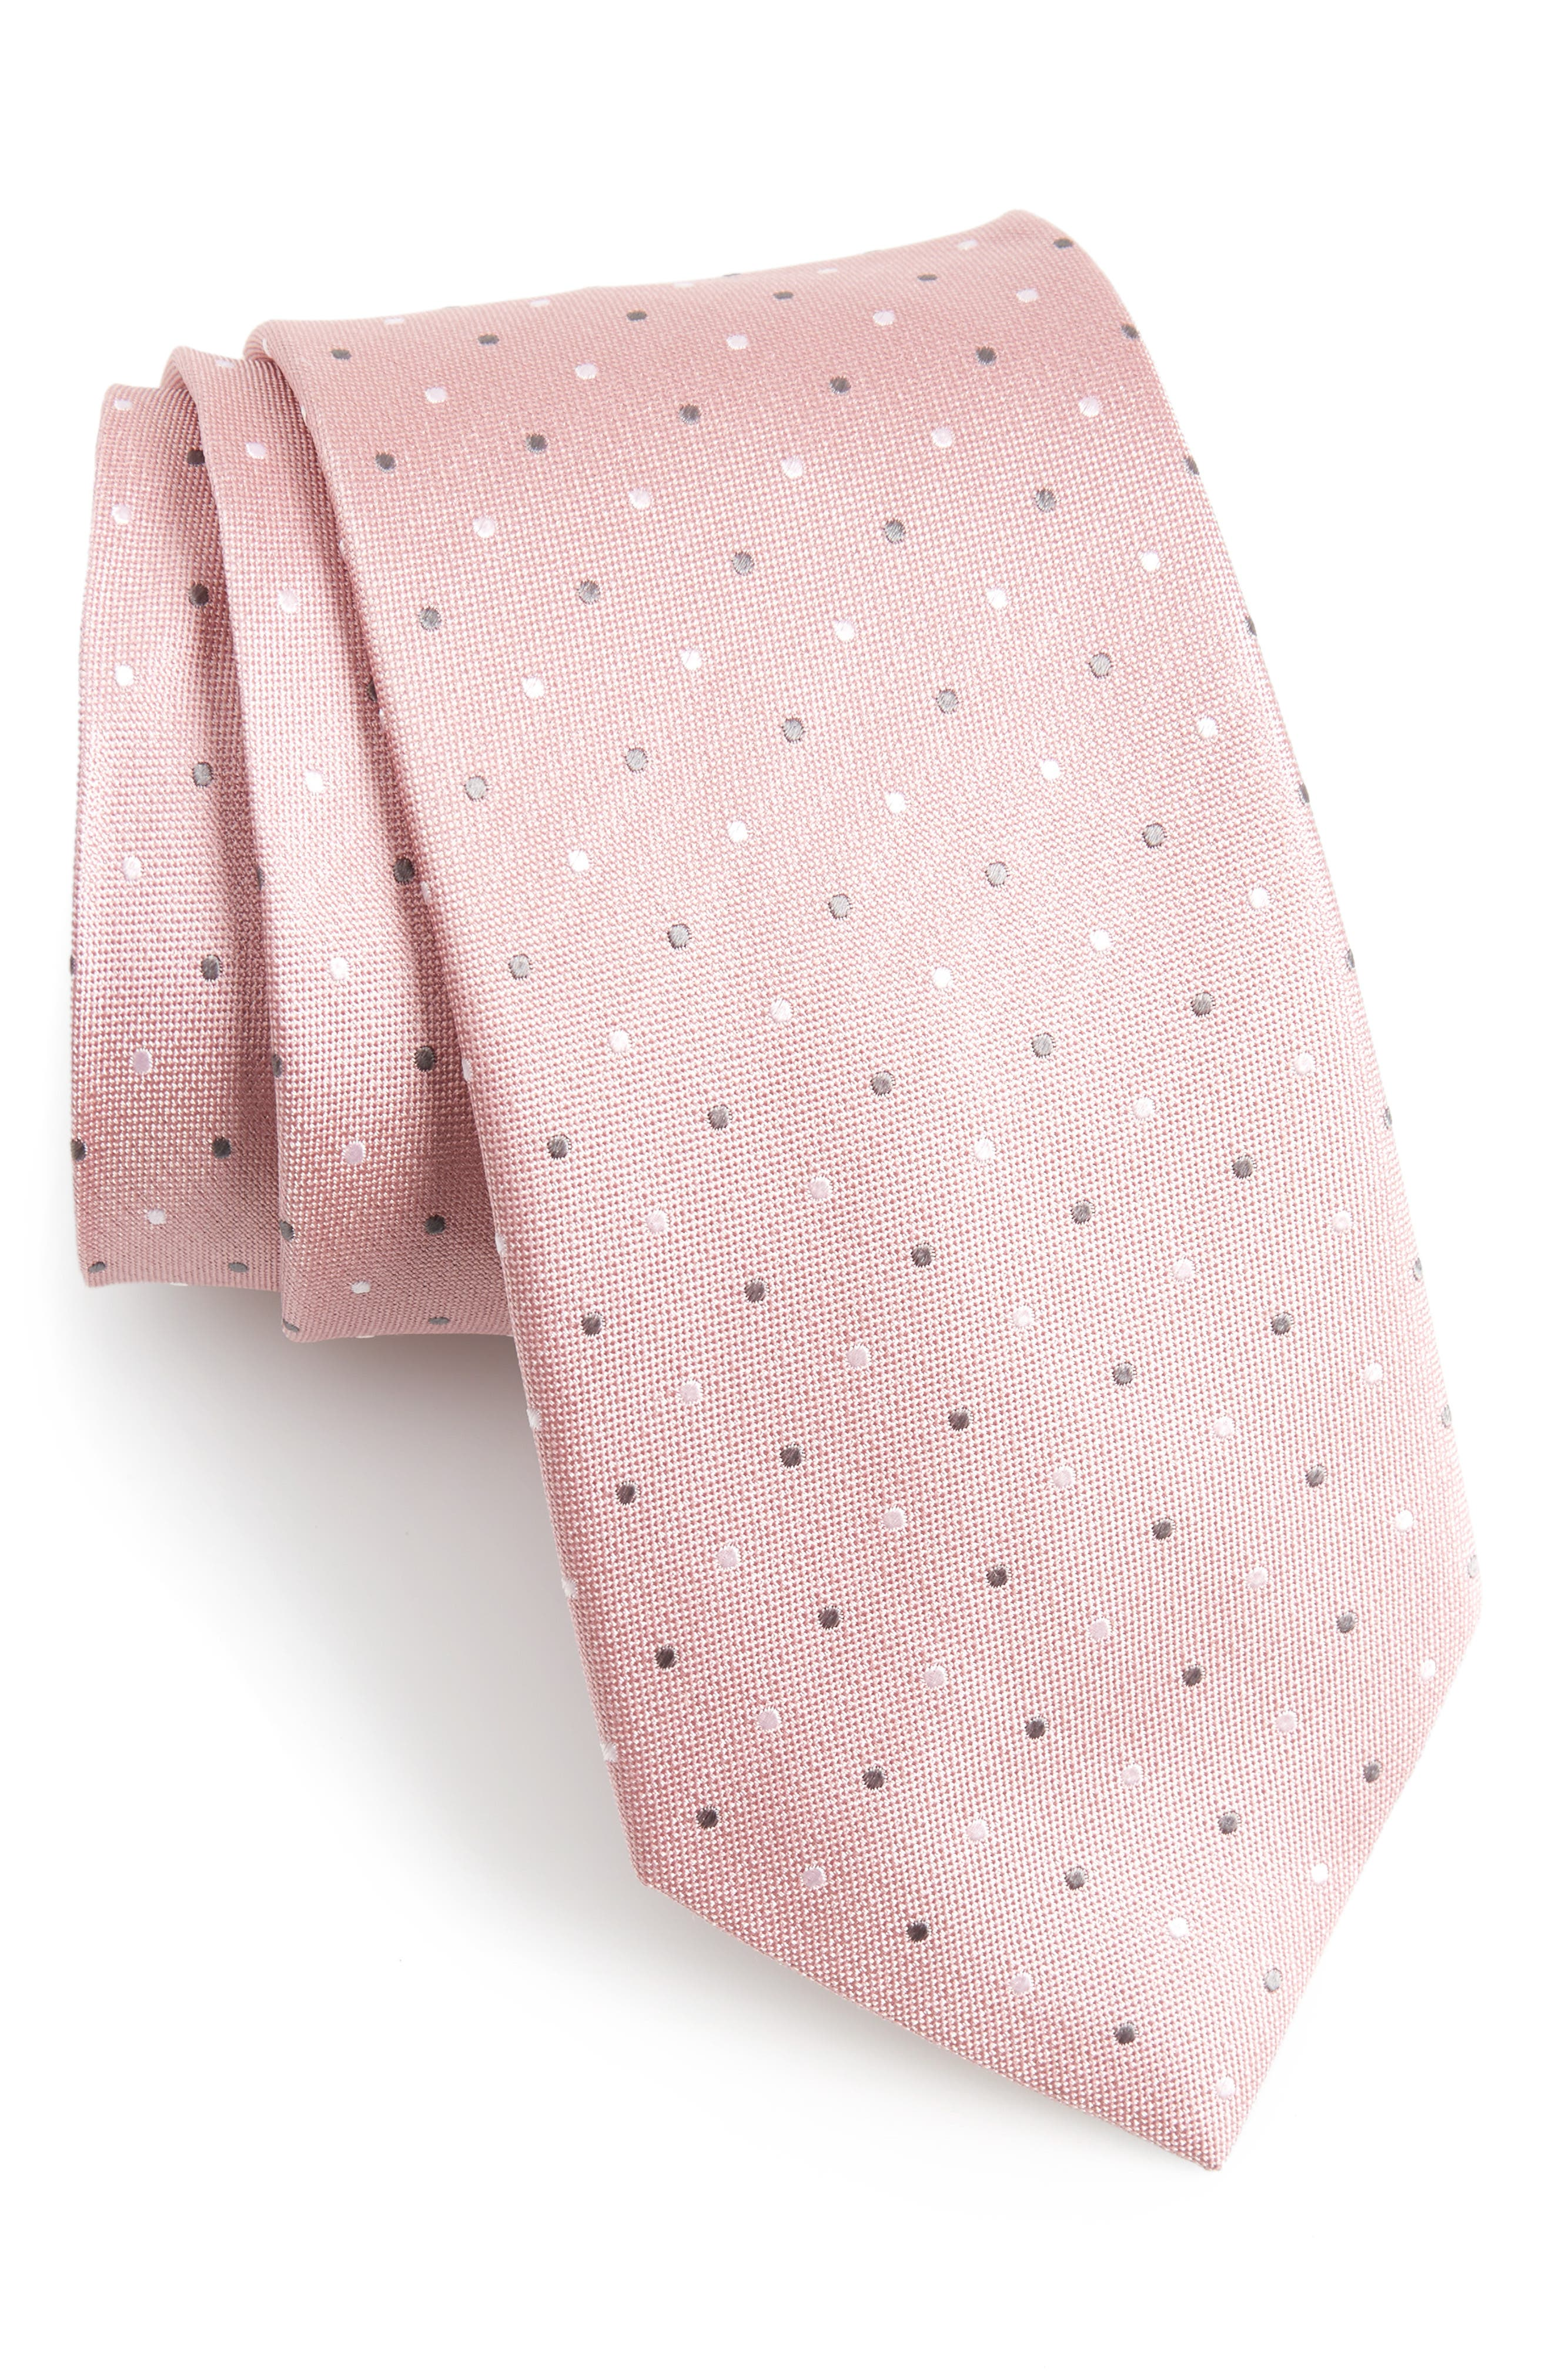 Dot Silk Tie,                         Main,                         color, Soft Pink